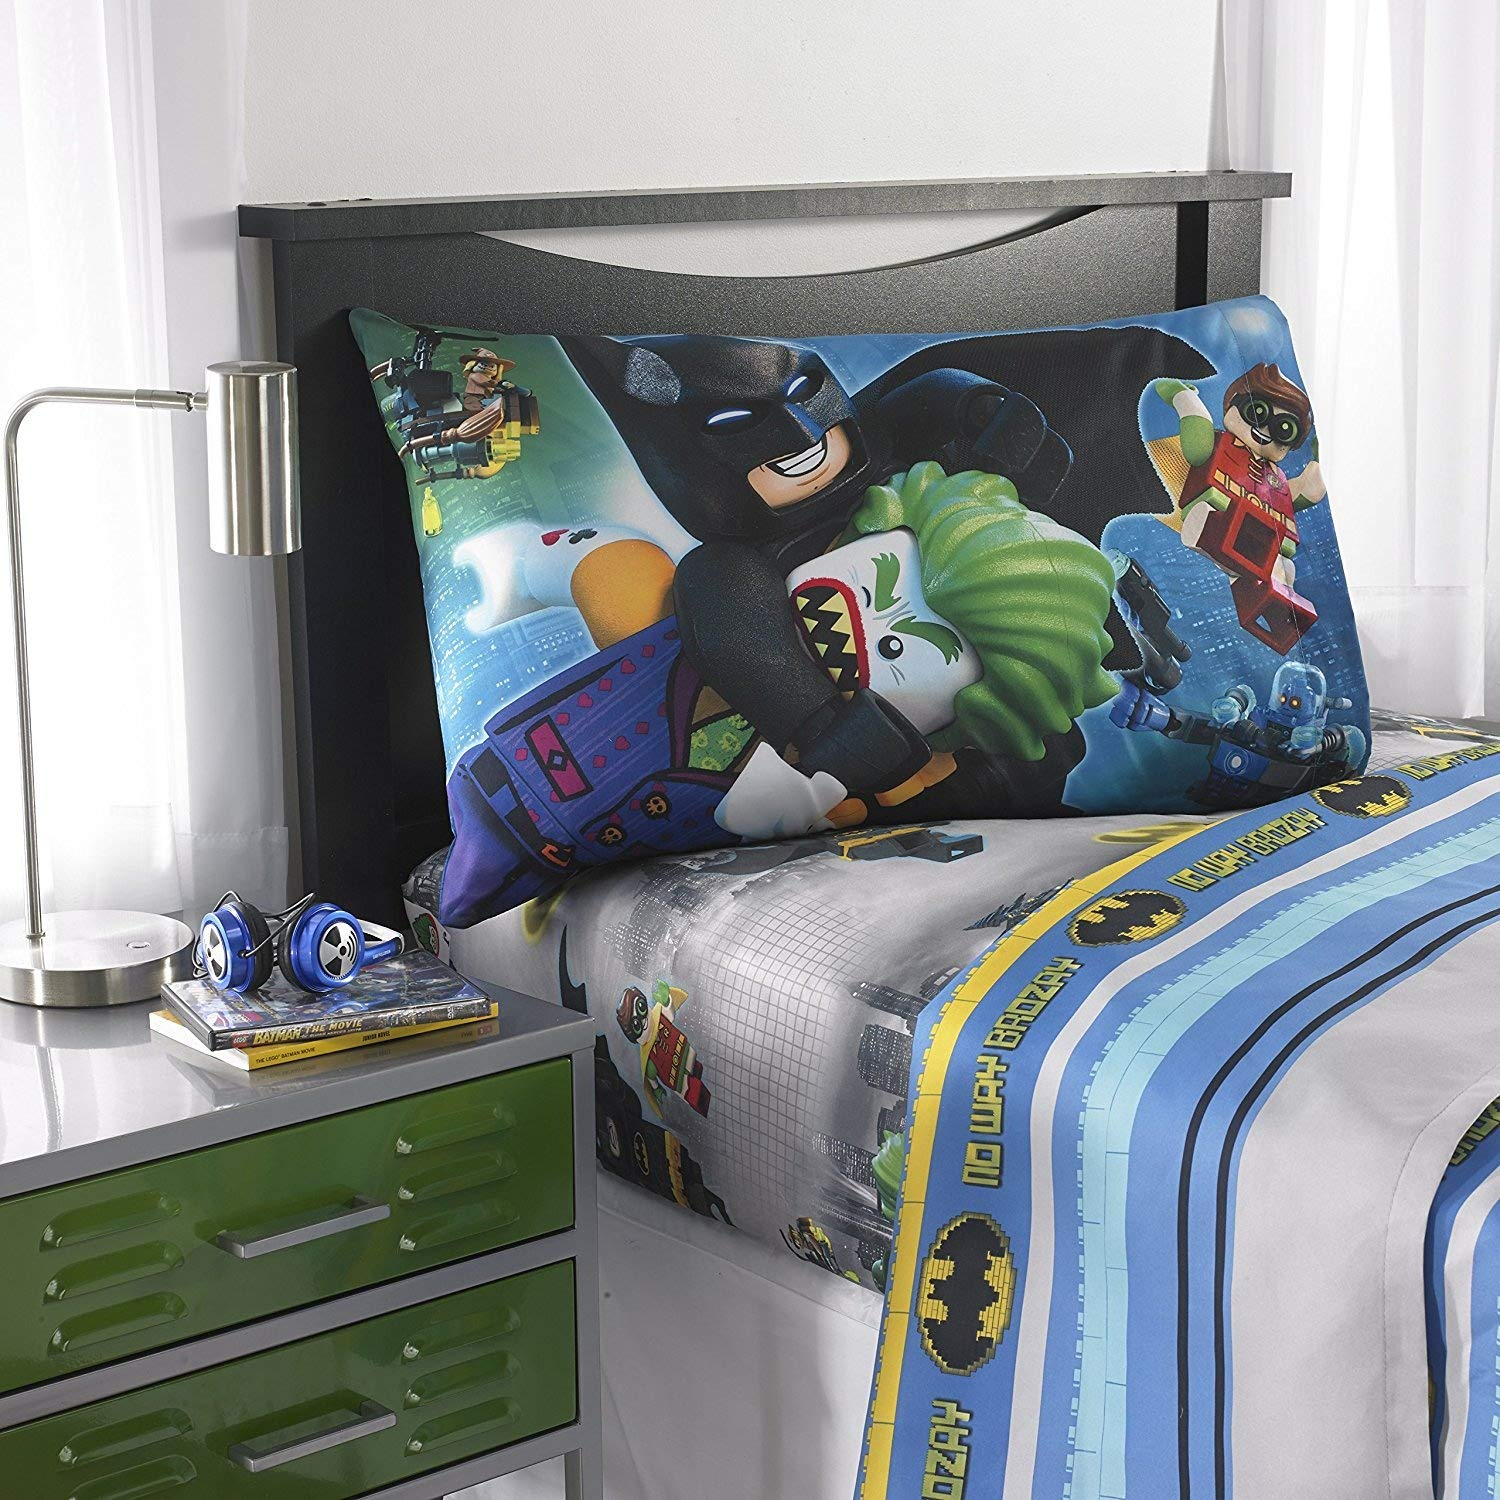 LEGO Batman Movie Microfiber Sheet Set with Pillow Cases - Full